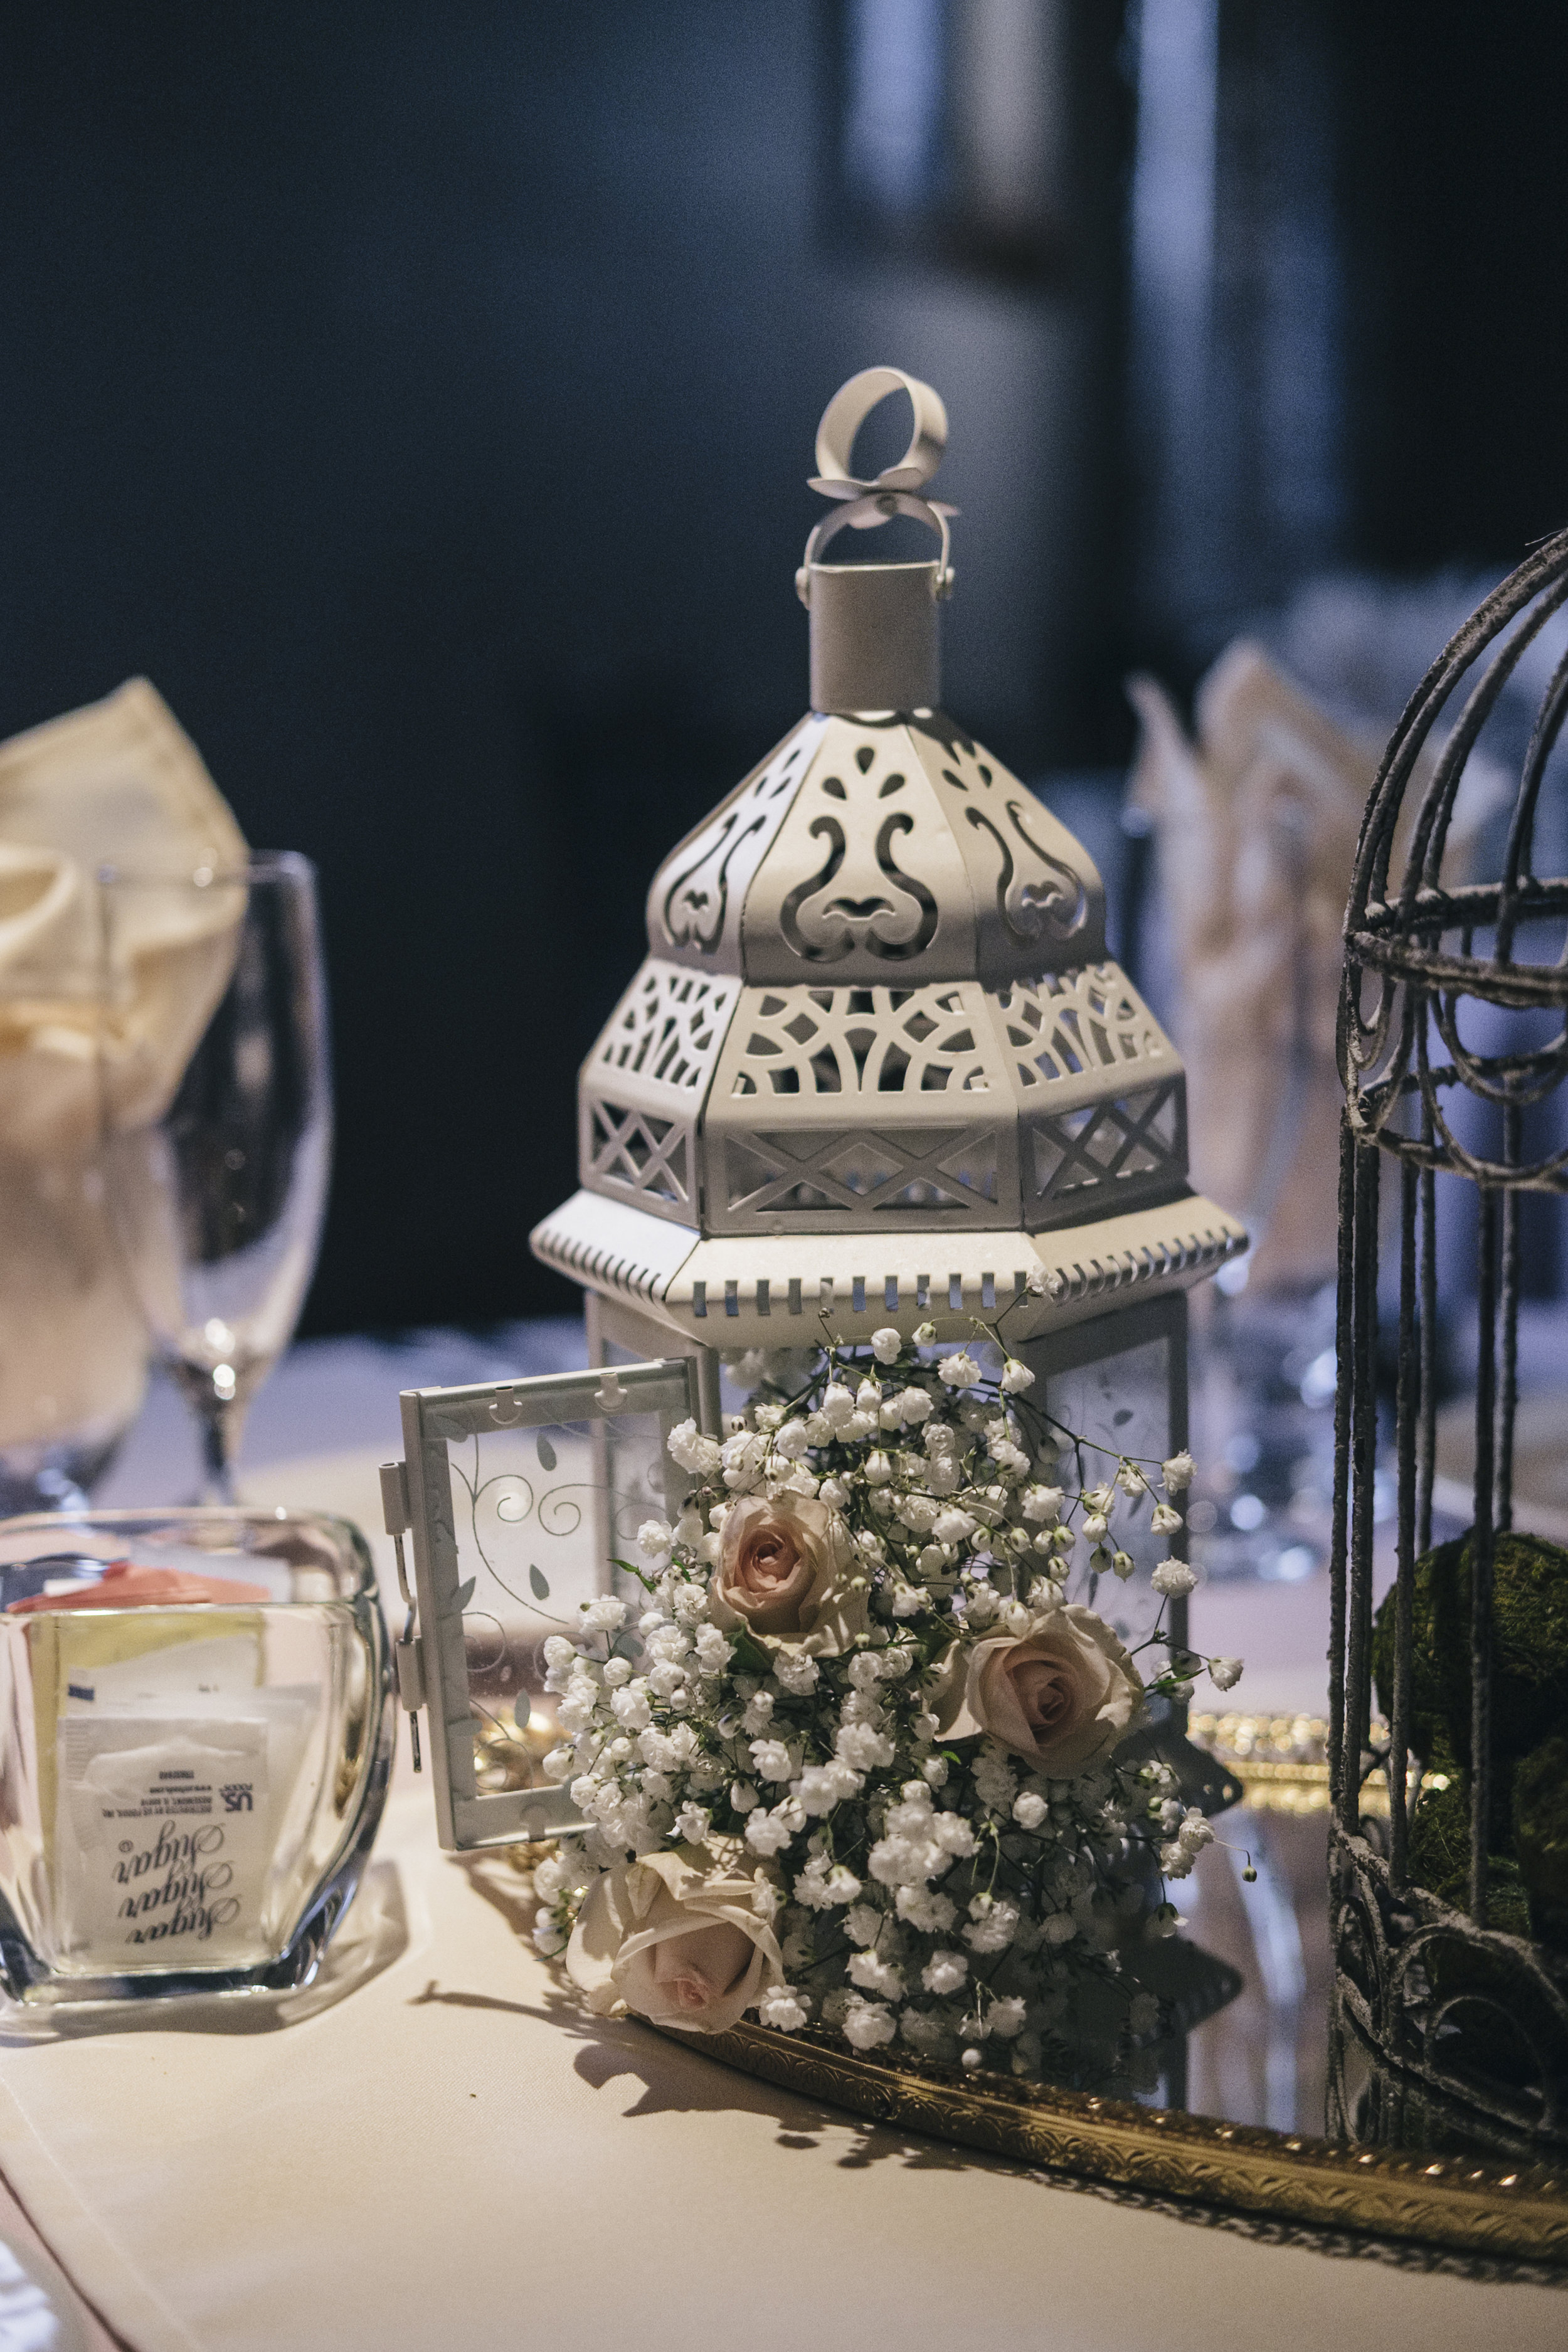 Wedding Table Decor at Reception with Toledo Wedding Photographers and Floral Designs from La Boutique Nostalgie